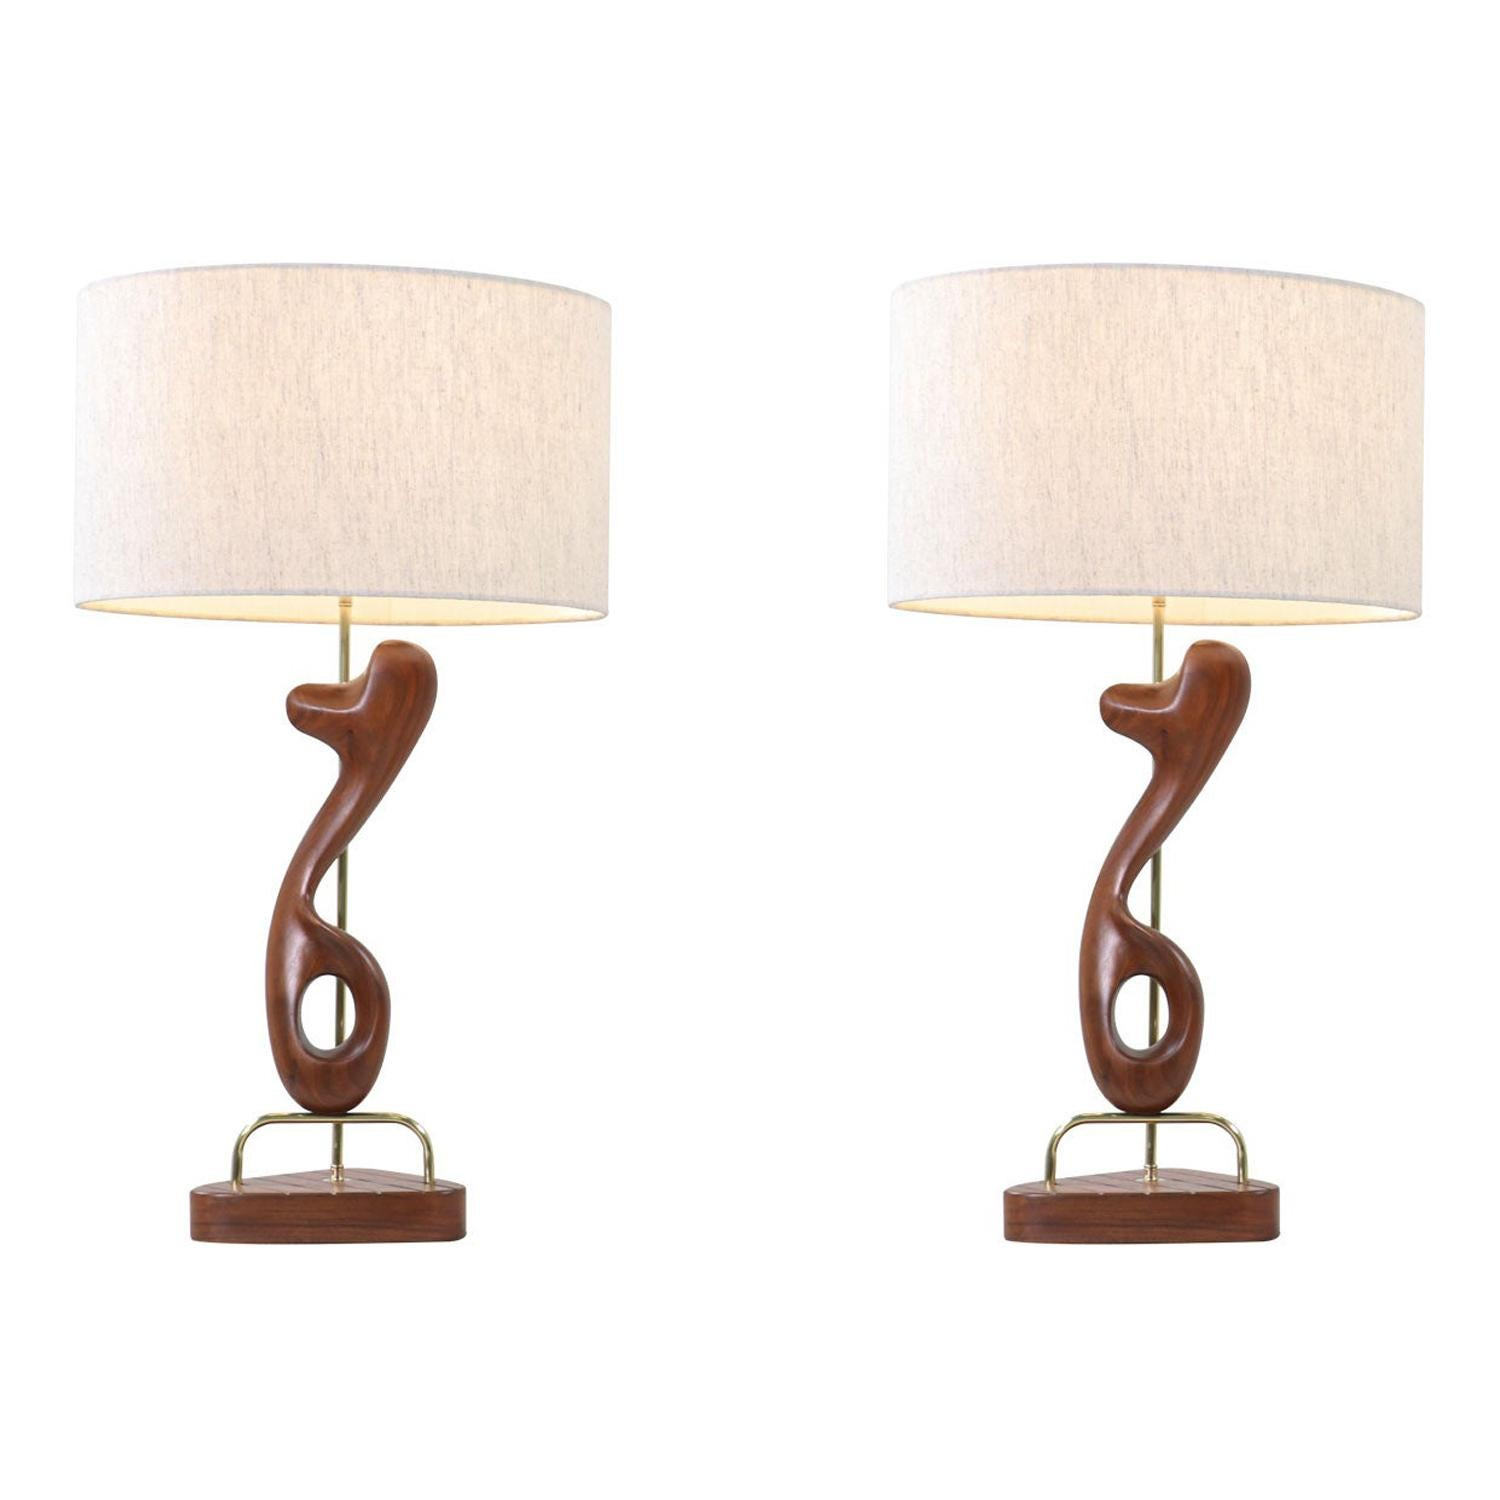 Modeline of California Sculpted Walnut & Brass Table Lamps